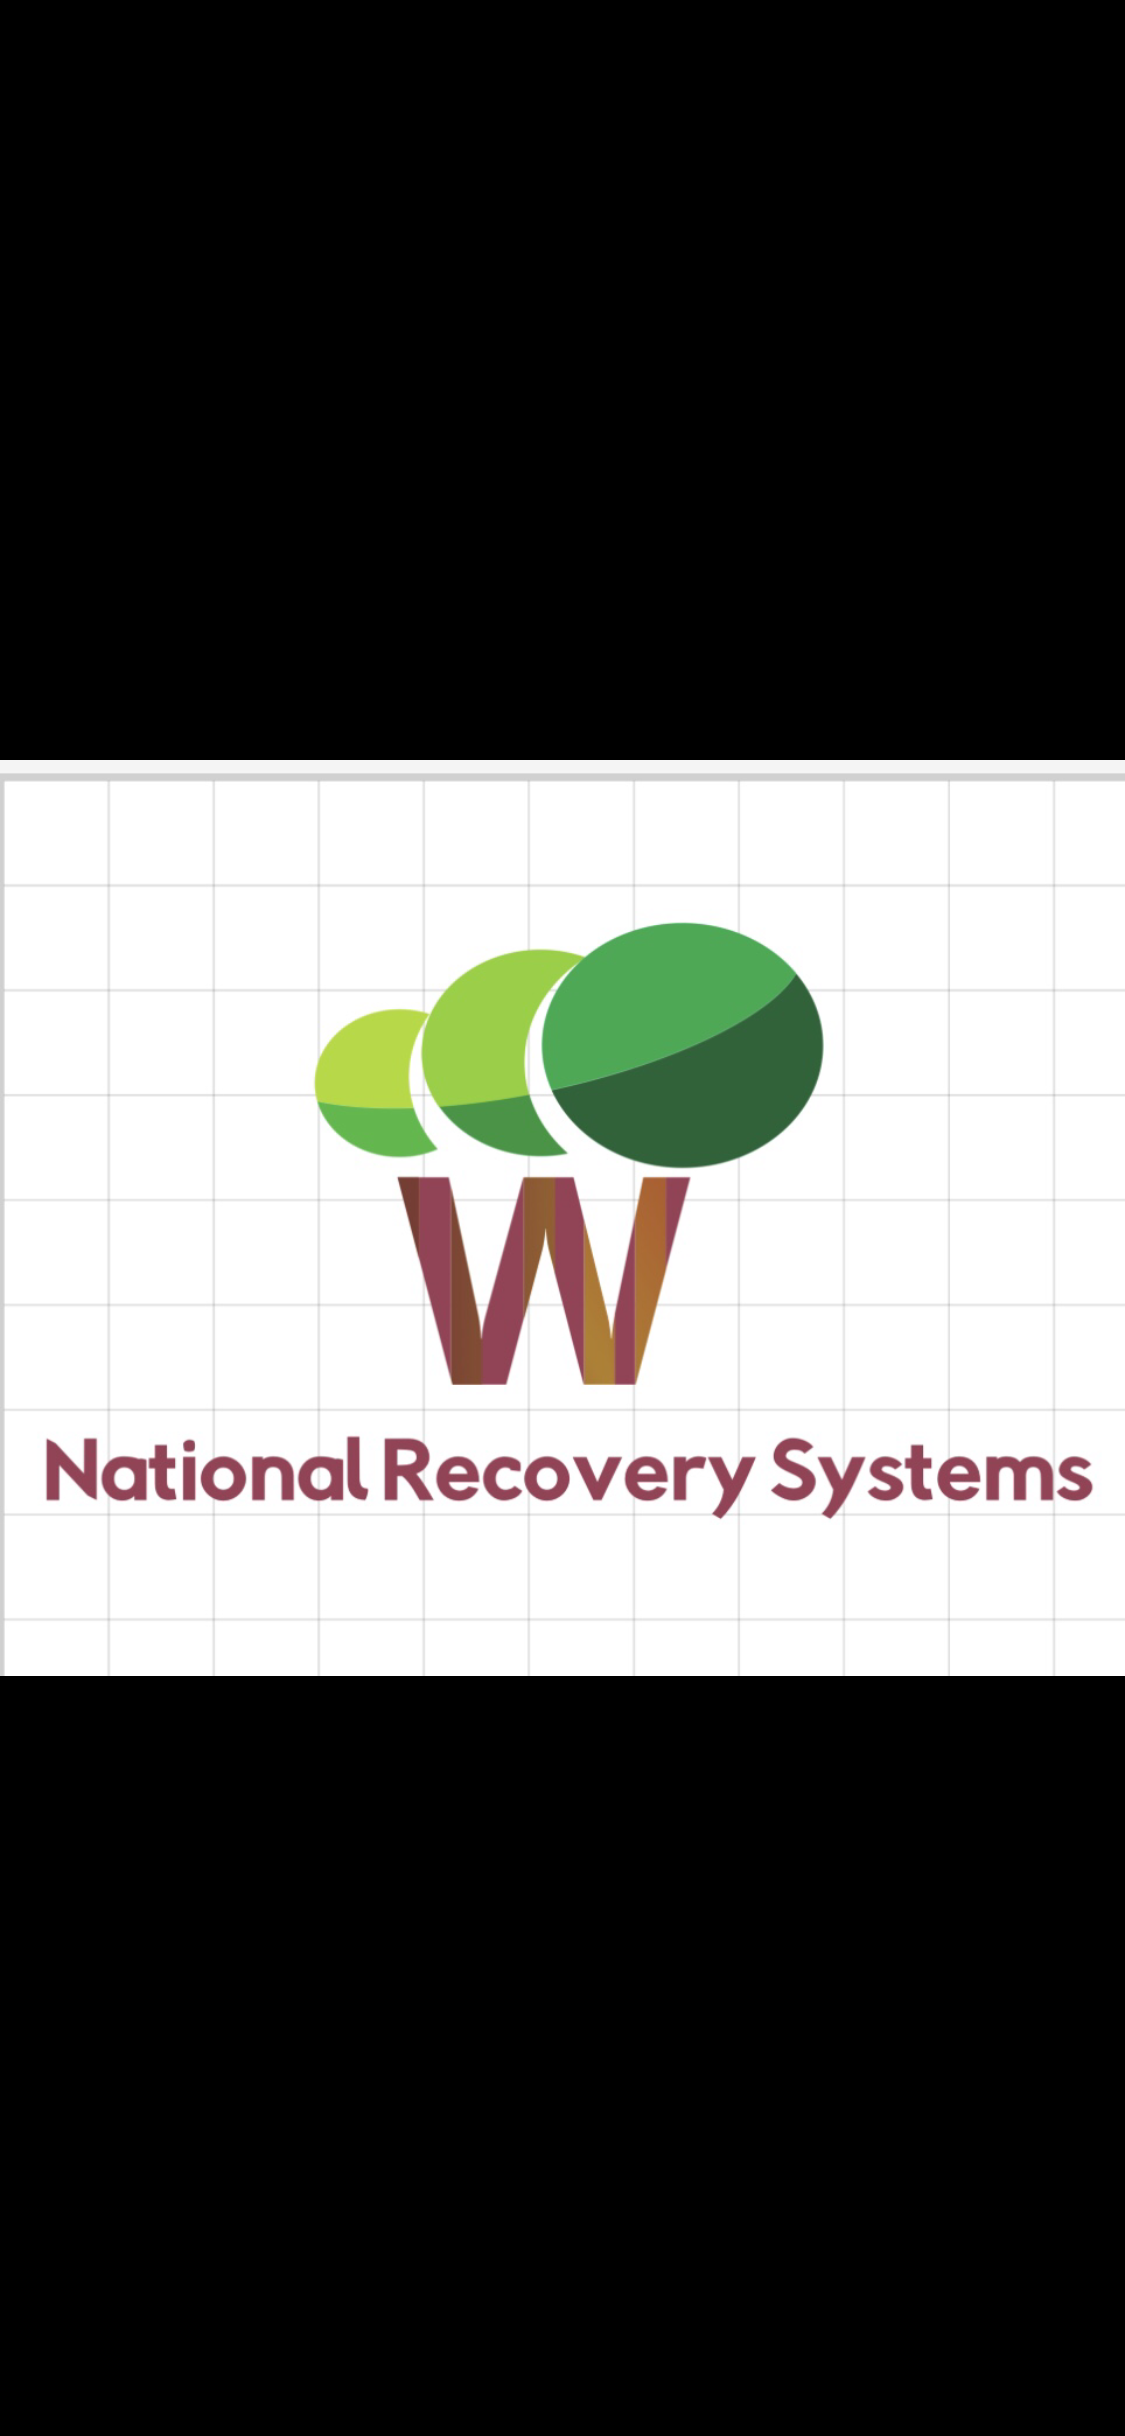 National Recovery Systems